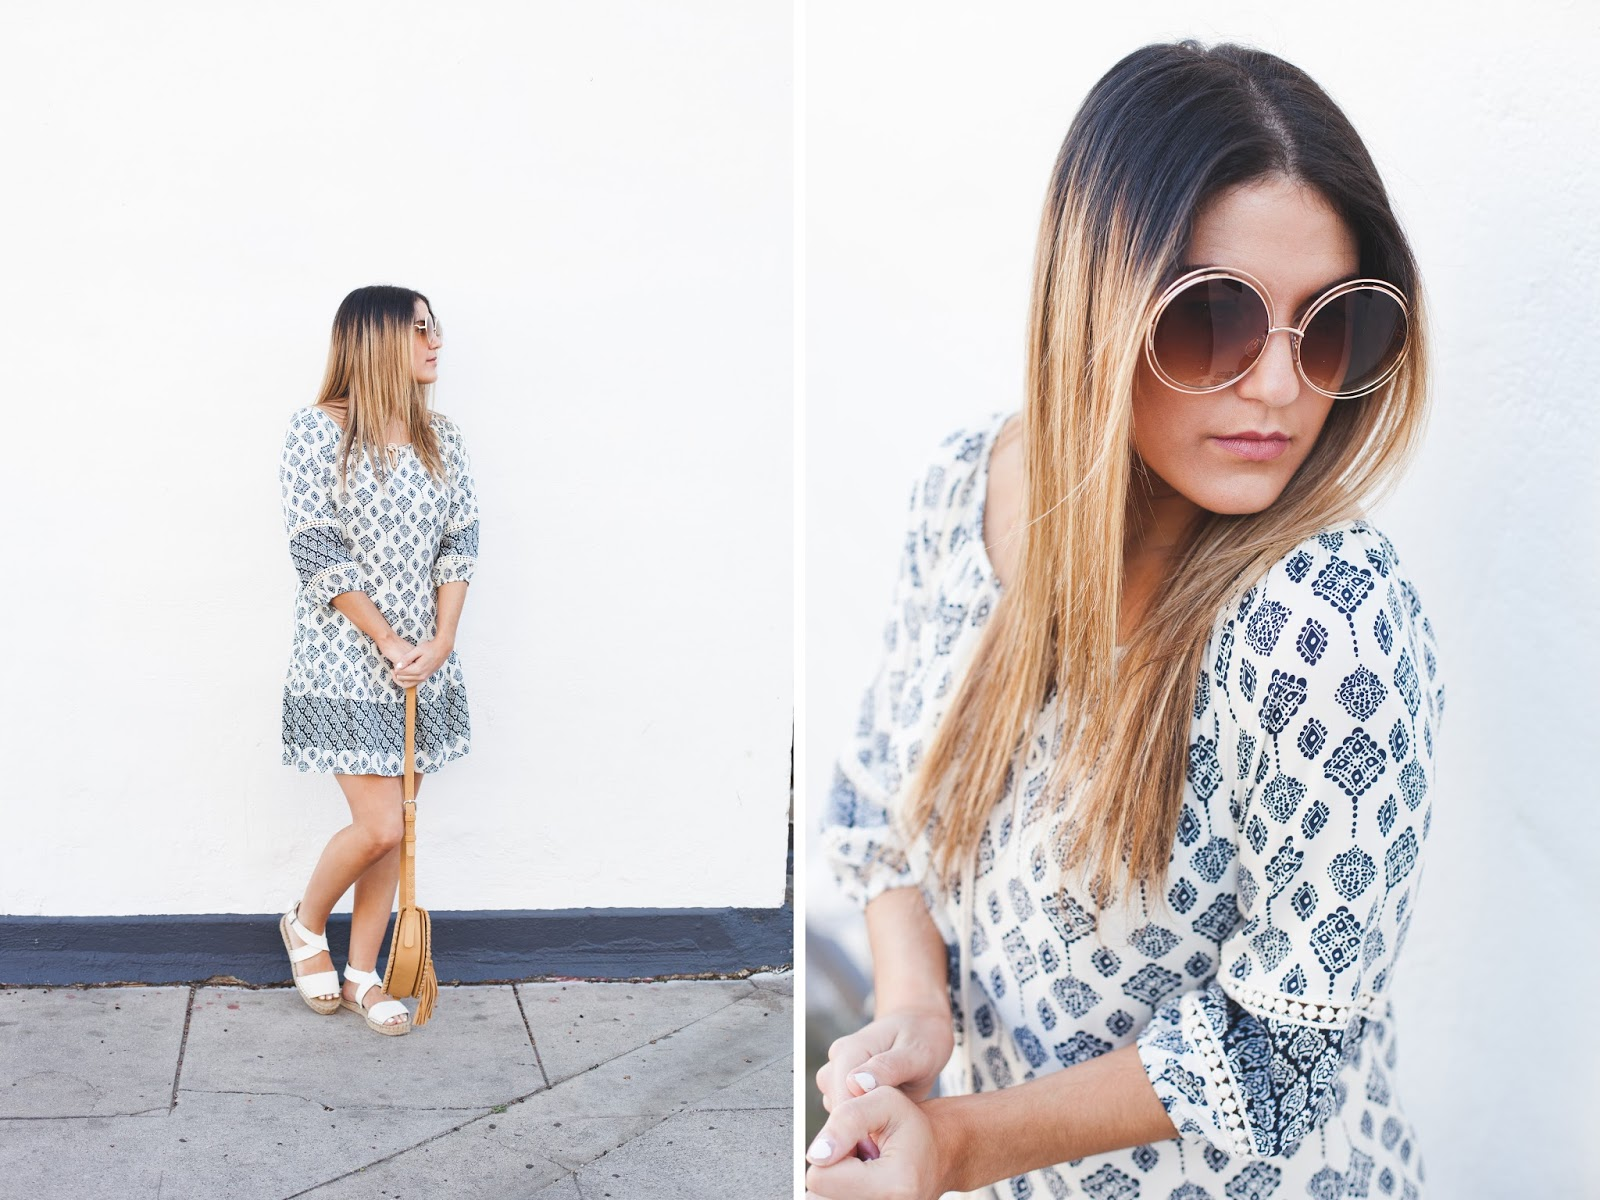 Boho Dress for Festival Season - My Cup of Chic